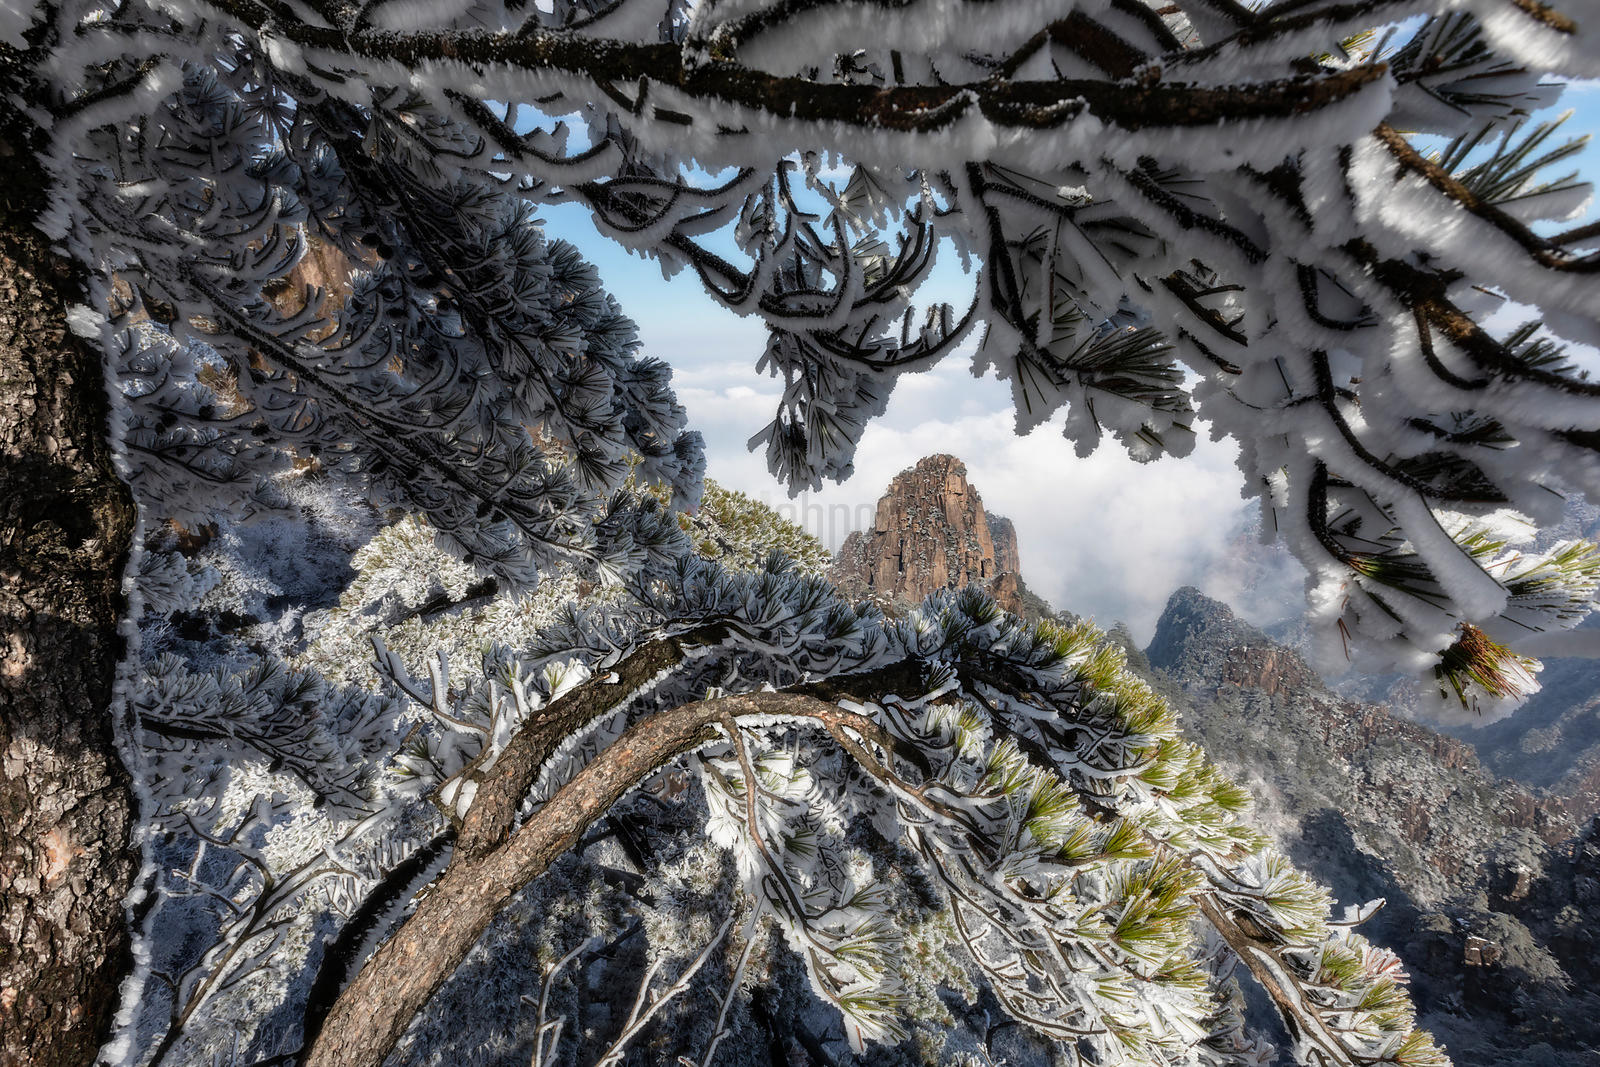 Huangshan Mountains Framed through a Rime Ice-Covered Pine